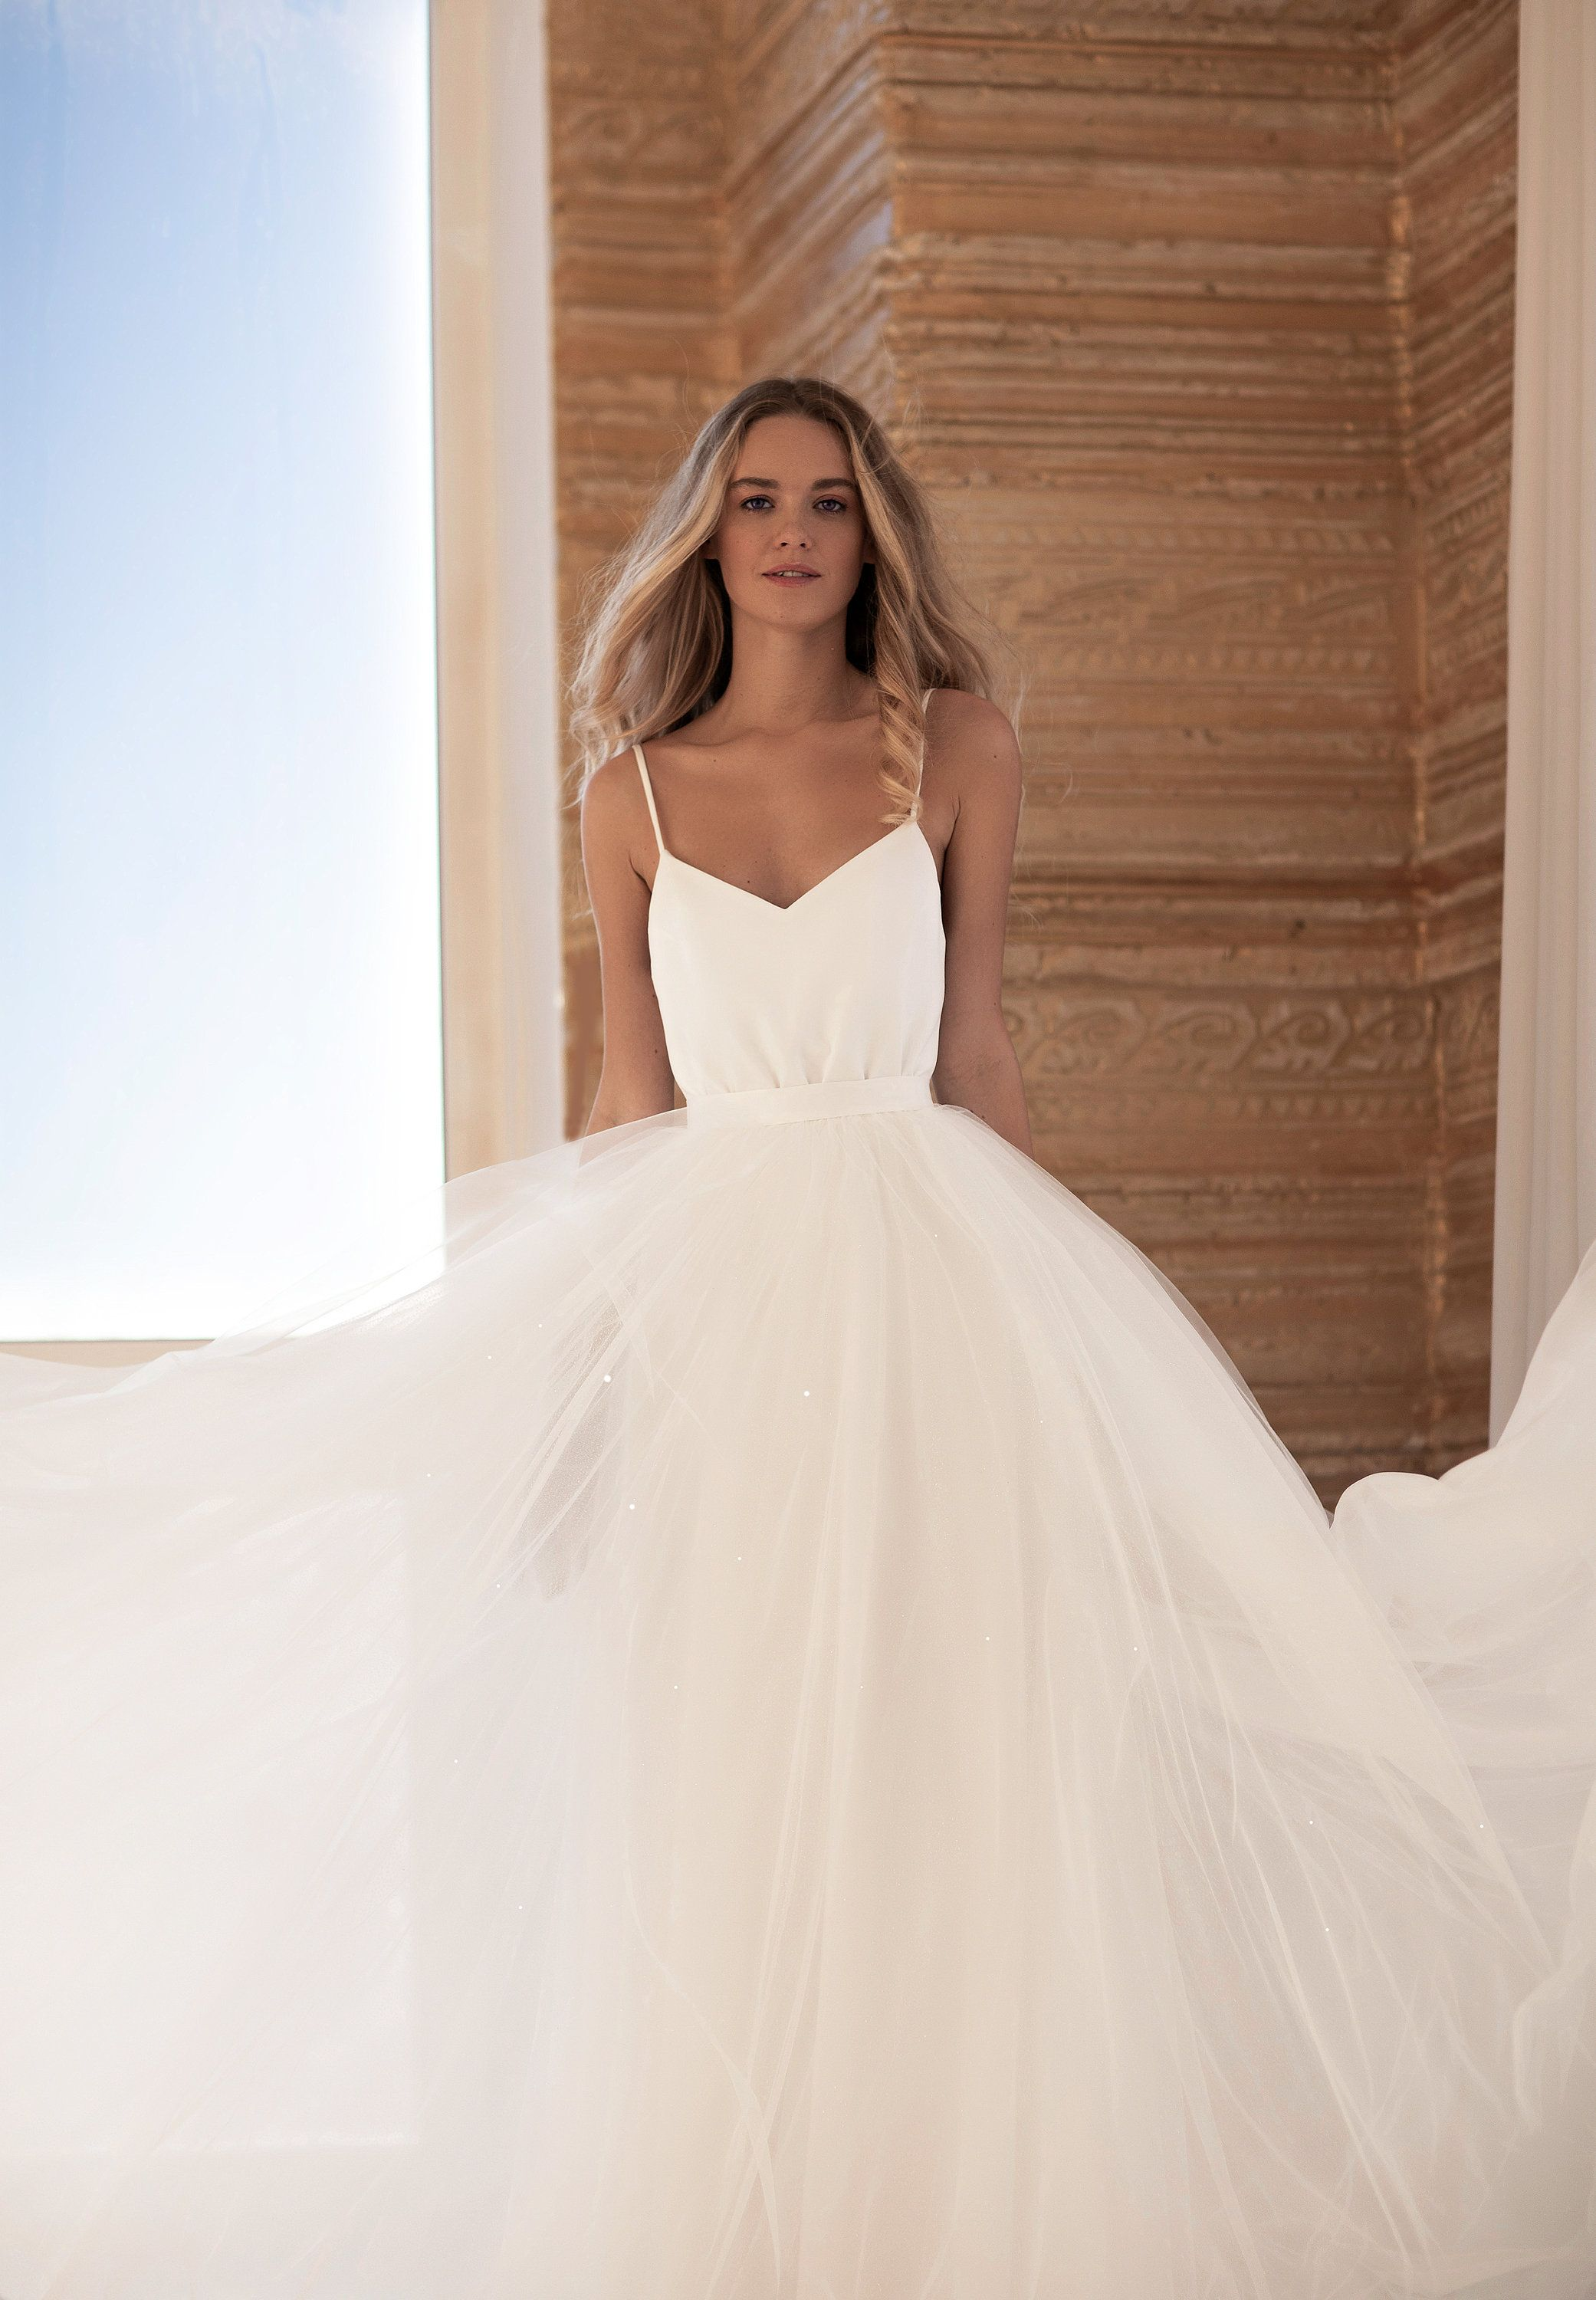 Transformer 2in1 A Line Dress Separate Lush Sparkly Skirt Soft Tulle Laconic Minimalist Wedding Dress Prue Minimalist Wedding Dresses A Line Wedding Dress Wedding Dresses